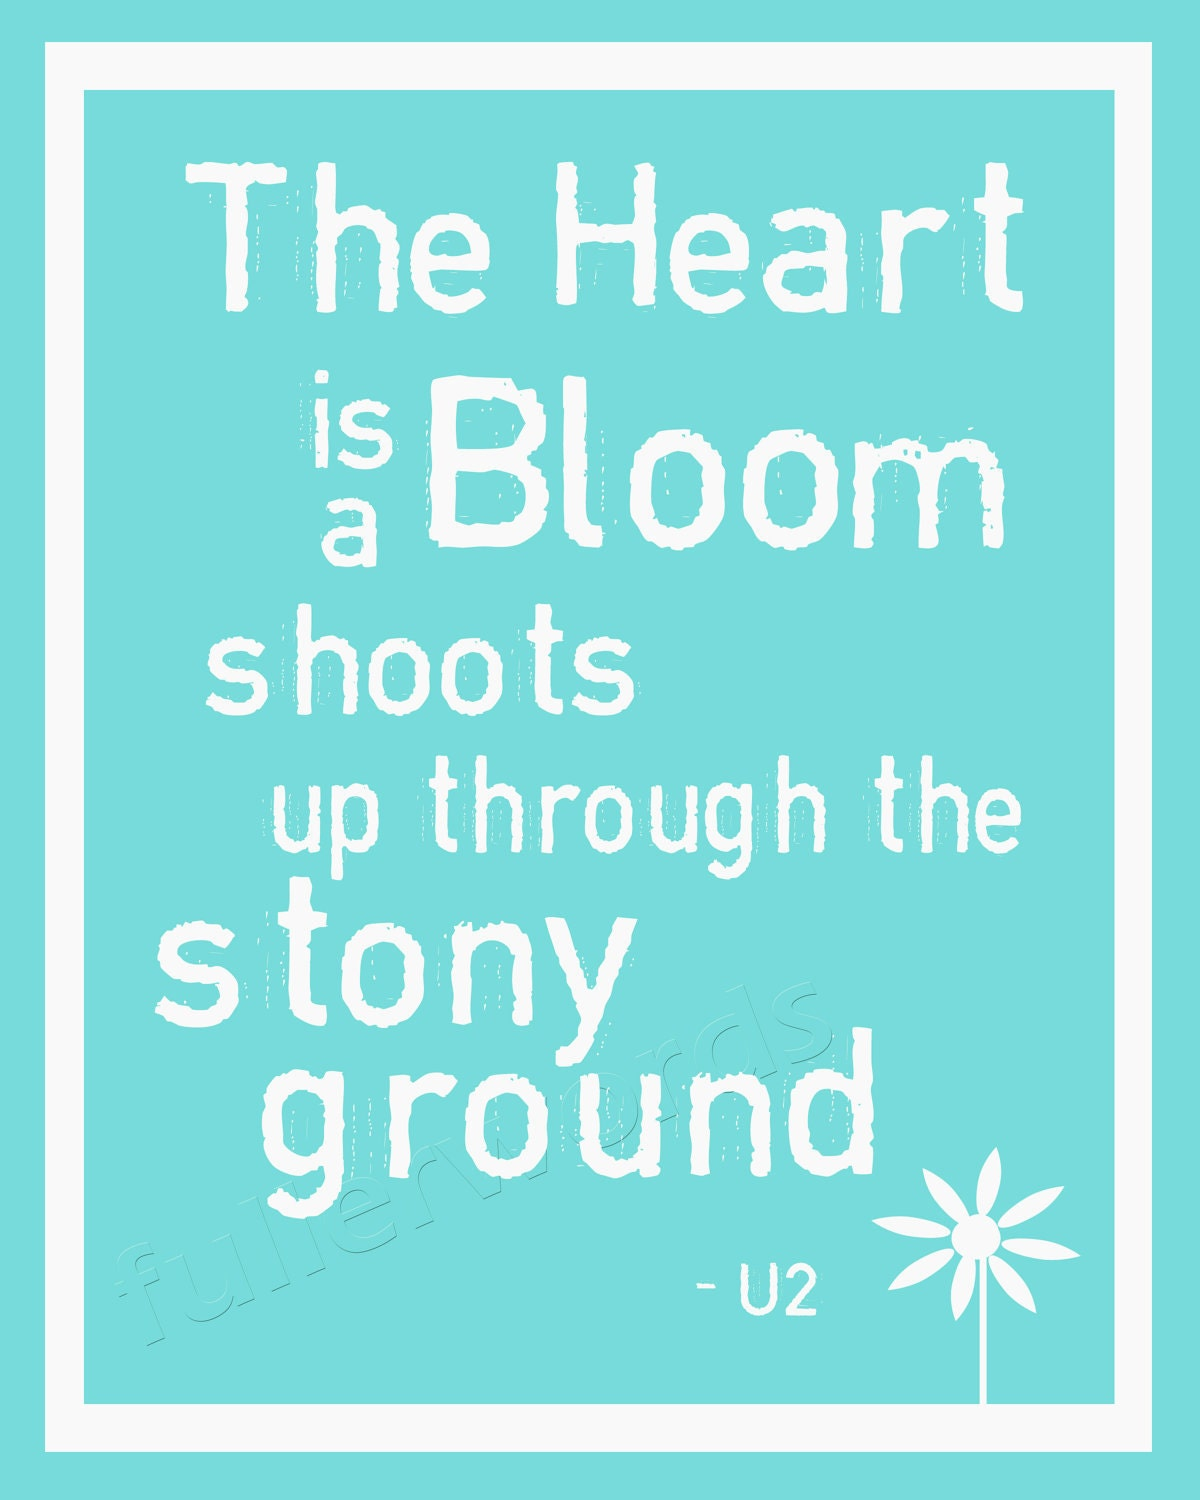 1000+ Images About ~U2 Religion~ On Pinterest